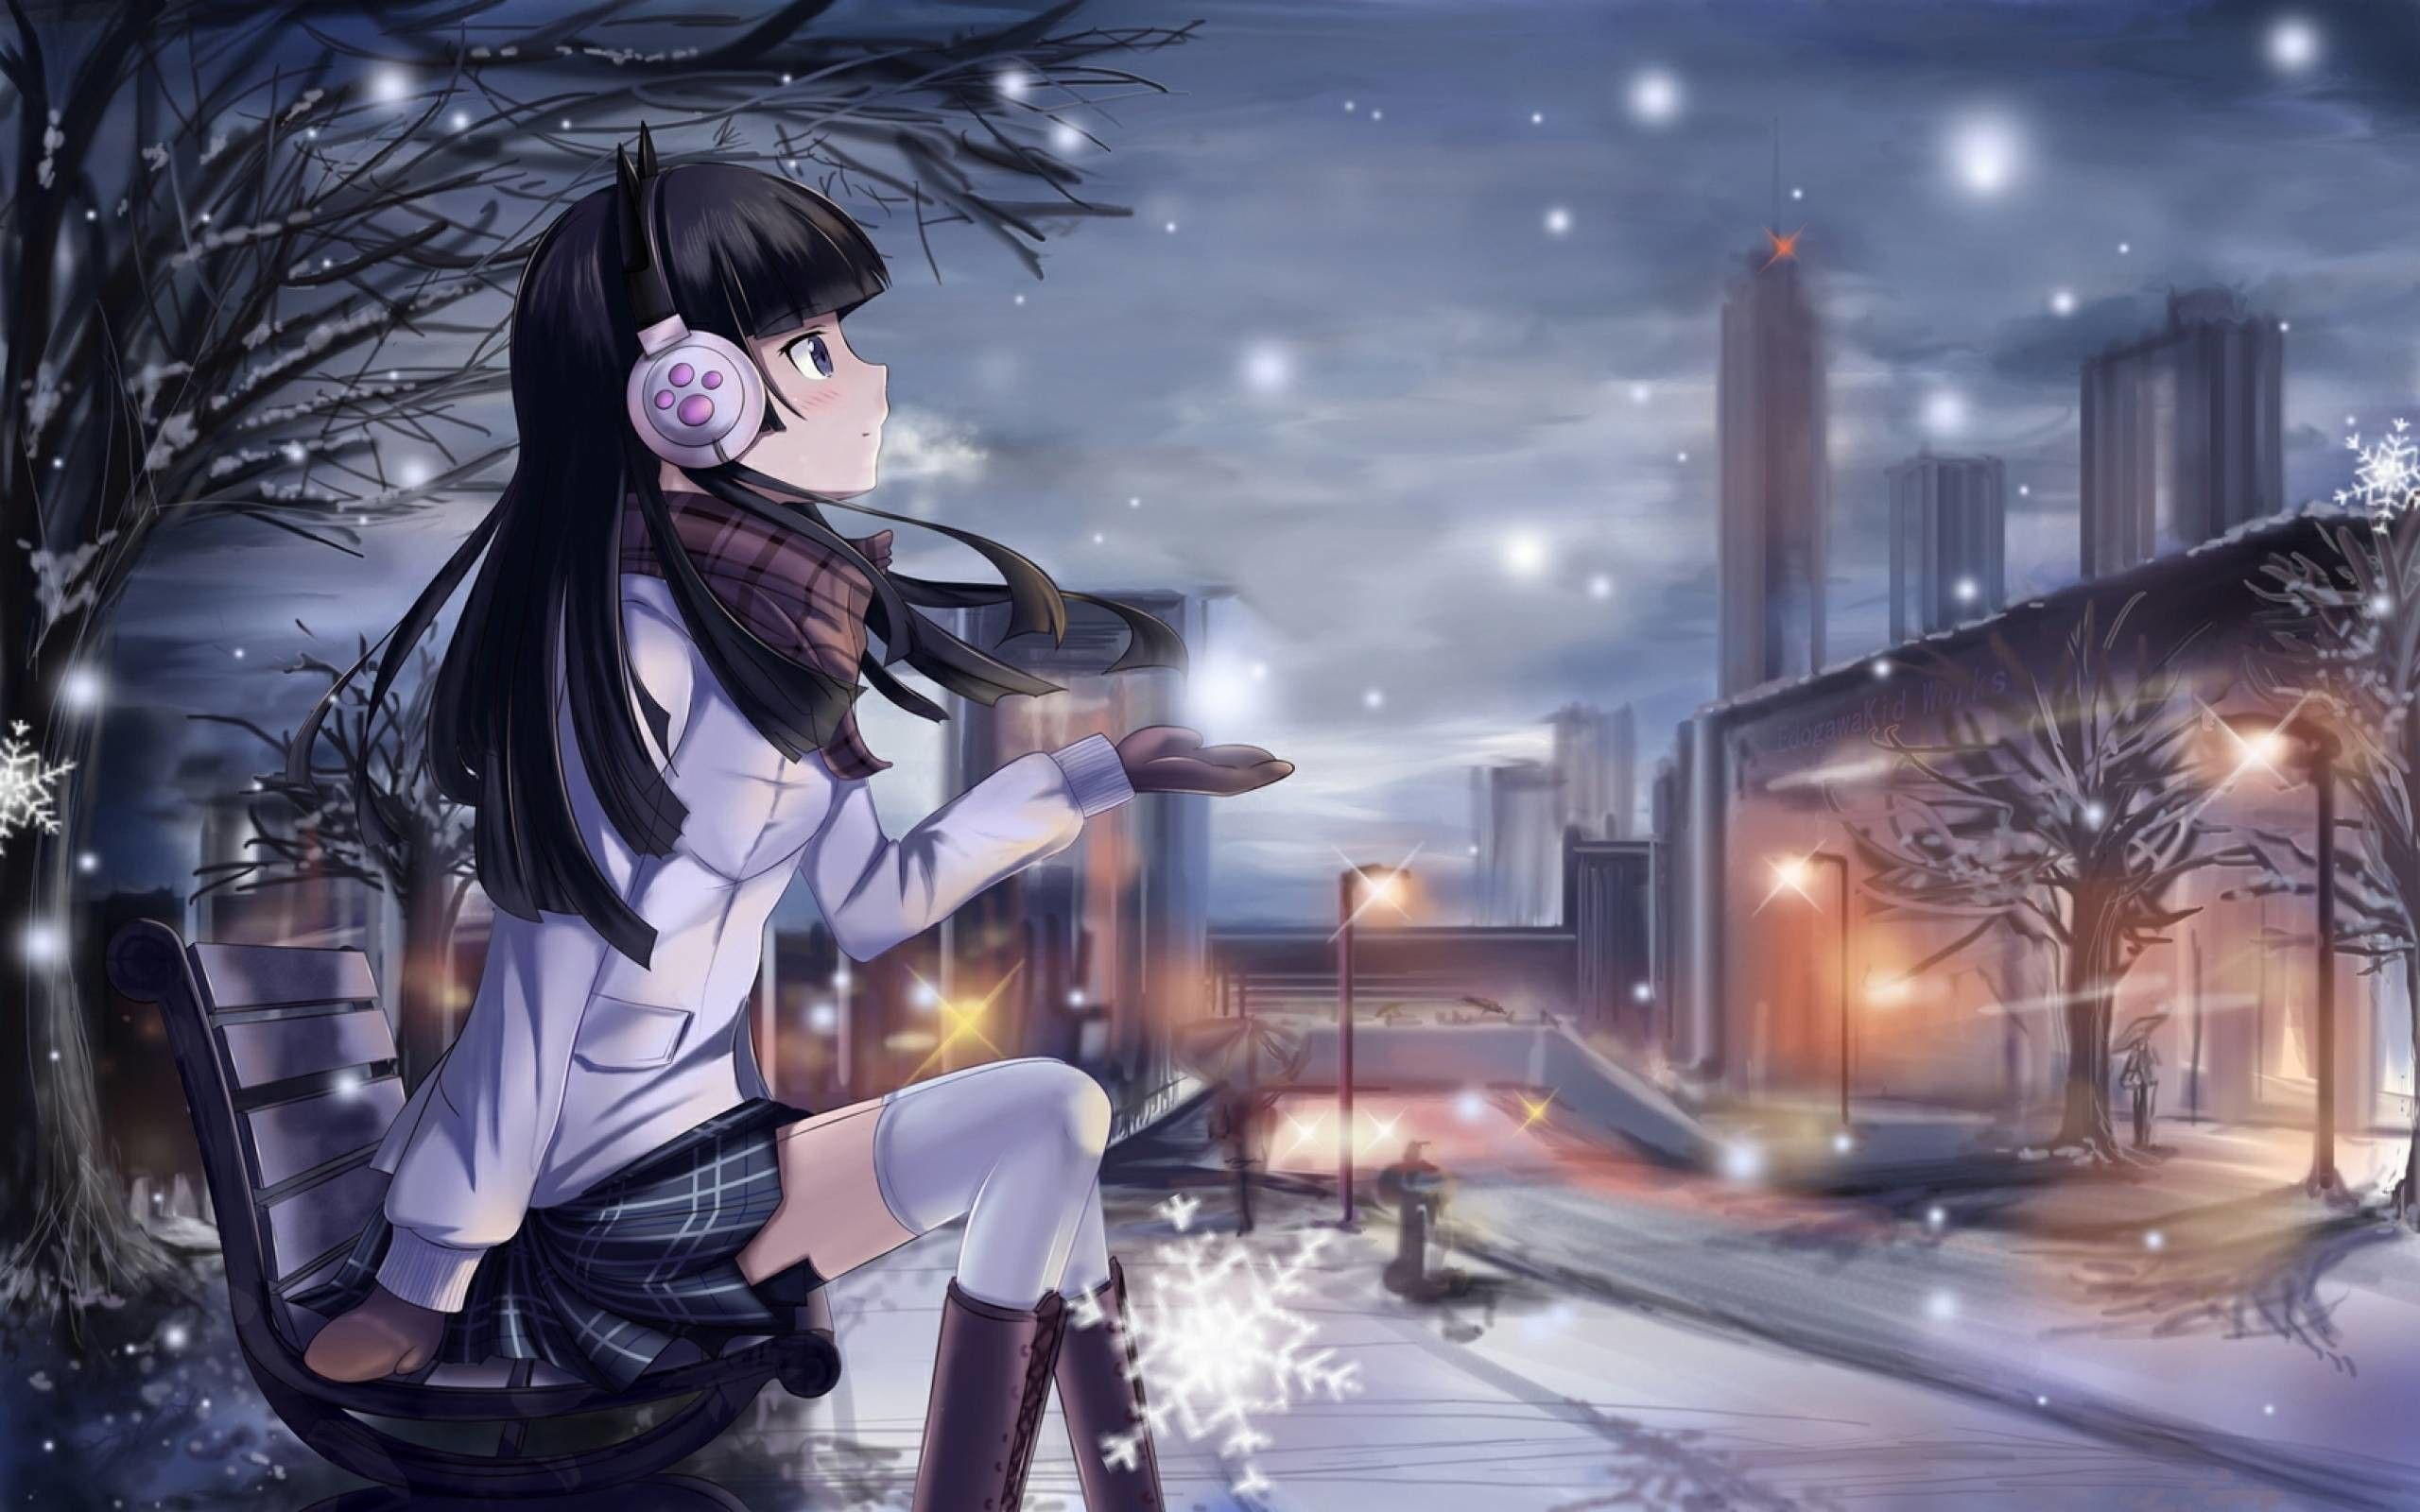 Beautiful Female Anime Wallpapers - Top Free Beautiful Female